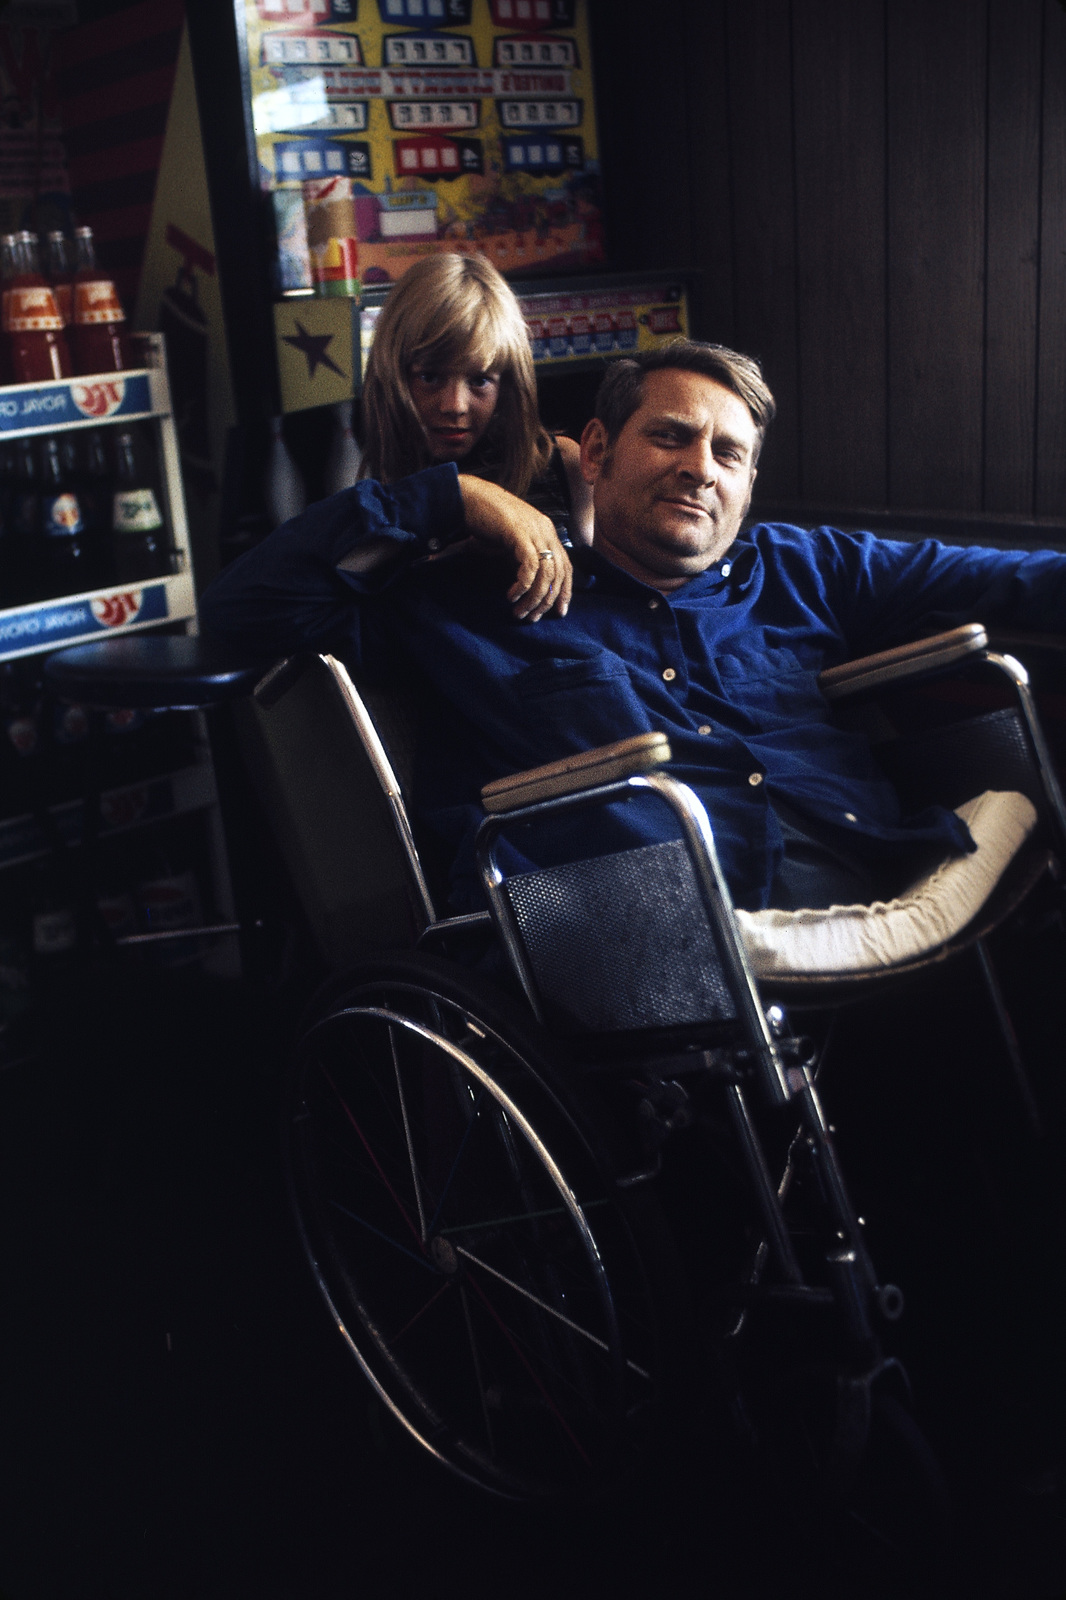 Jack Smith, 42, a Disabled Miner Who Lives in Rhodell, West Virginia, Shown with One of His Daughters, Debra, in the Tavern He Now Operates, He Had Worked in the Mines One Year When His Legs were Crushed in a Roof Cave-in, it Took Him 18 Years to Received Workman's Compensation, His Wheelchair was Bought for Him by His Friend, Arnold Miller, Now President of the United Mine Workers Smith is Active in the Union, and Has Manned Picket Lines in the Past